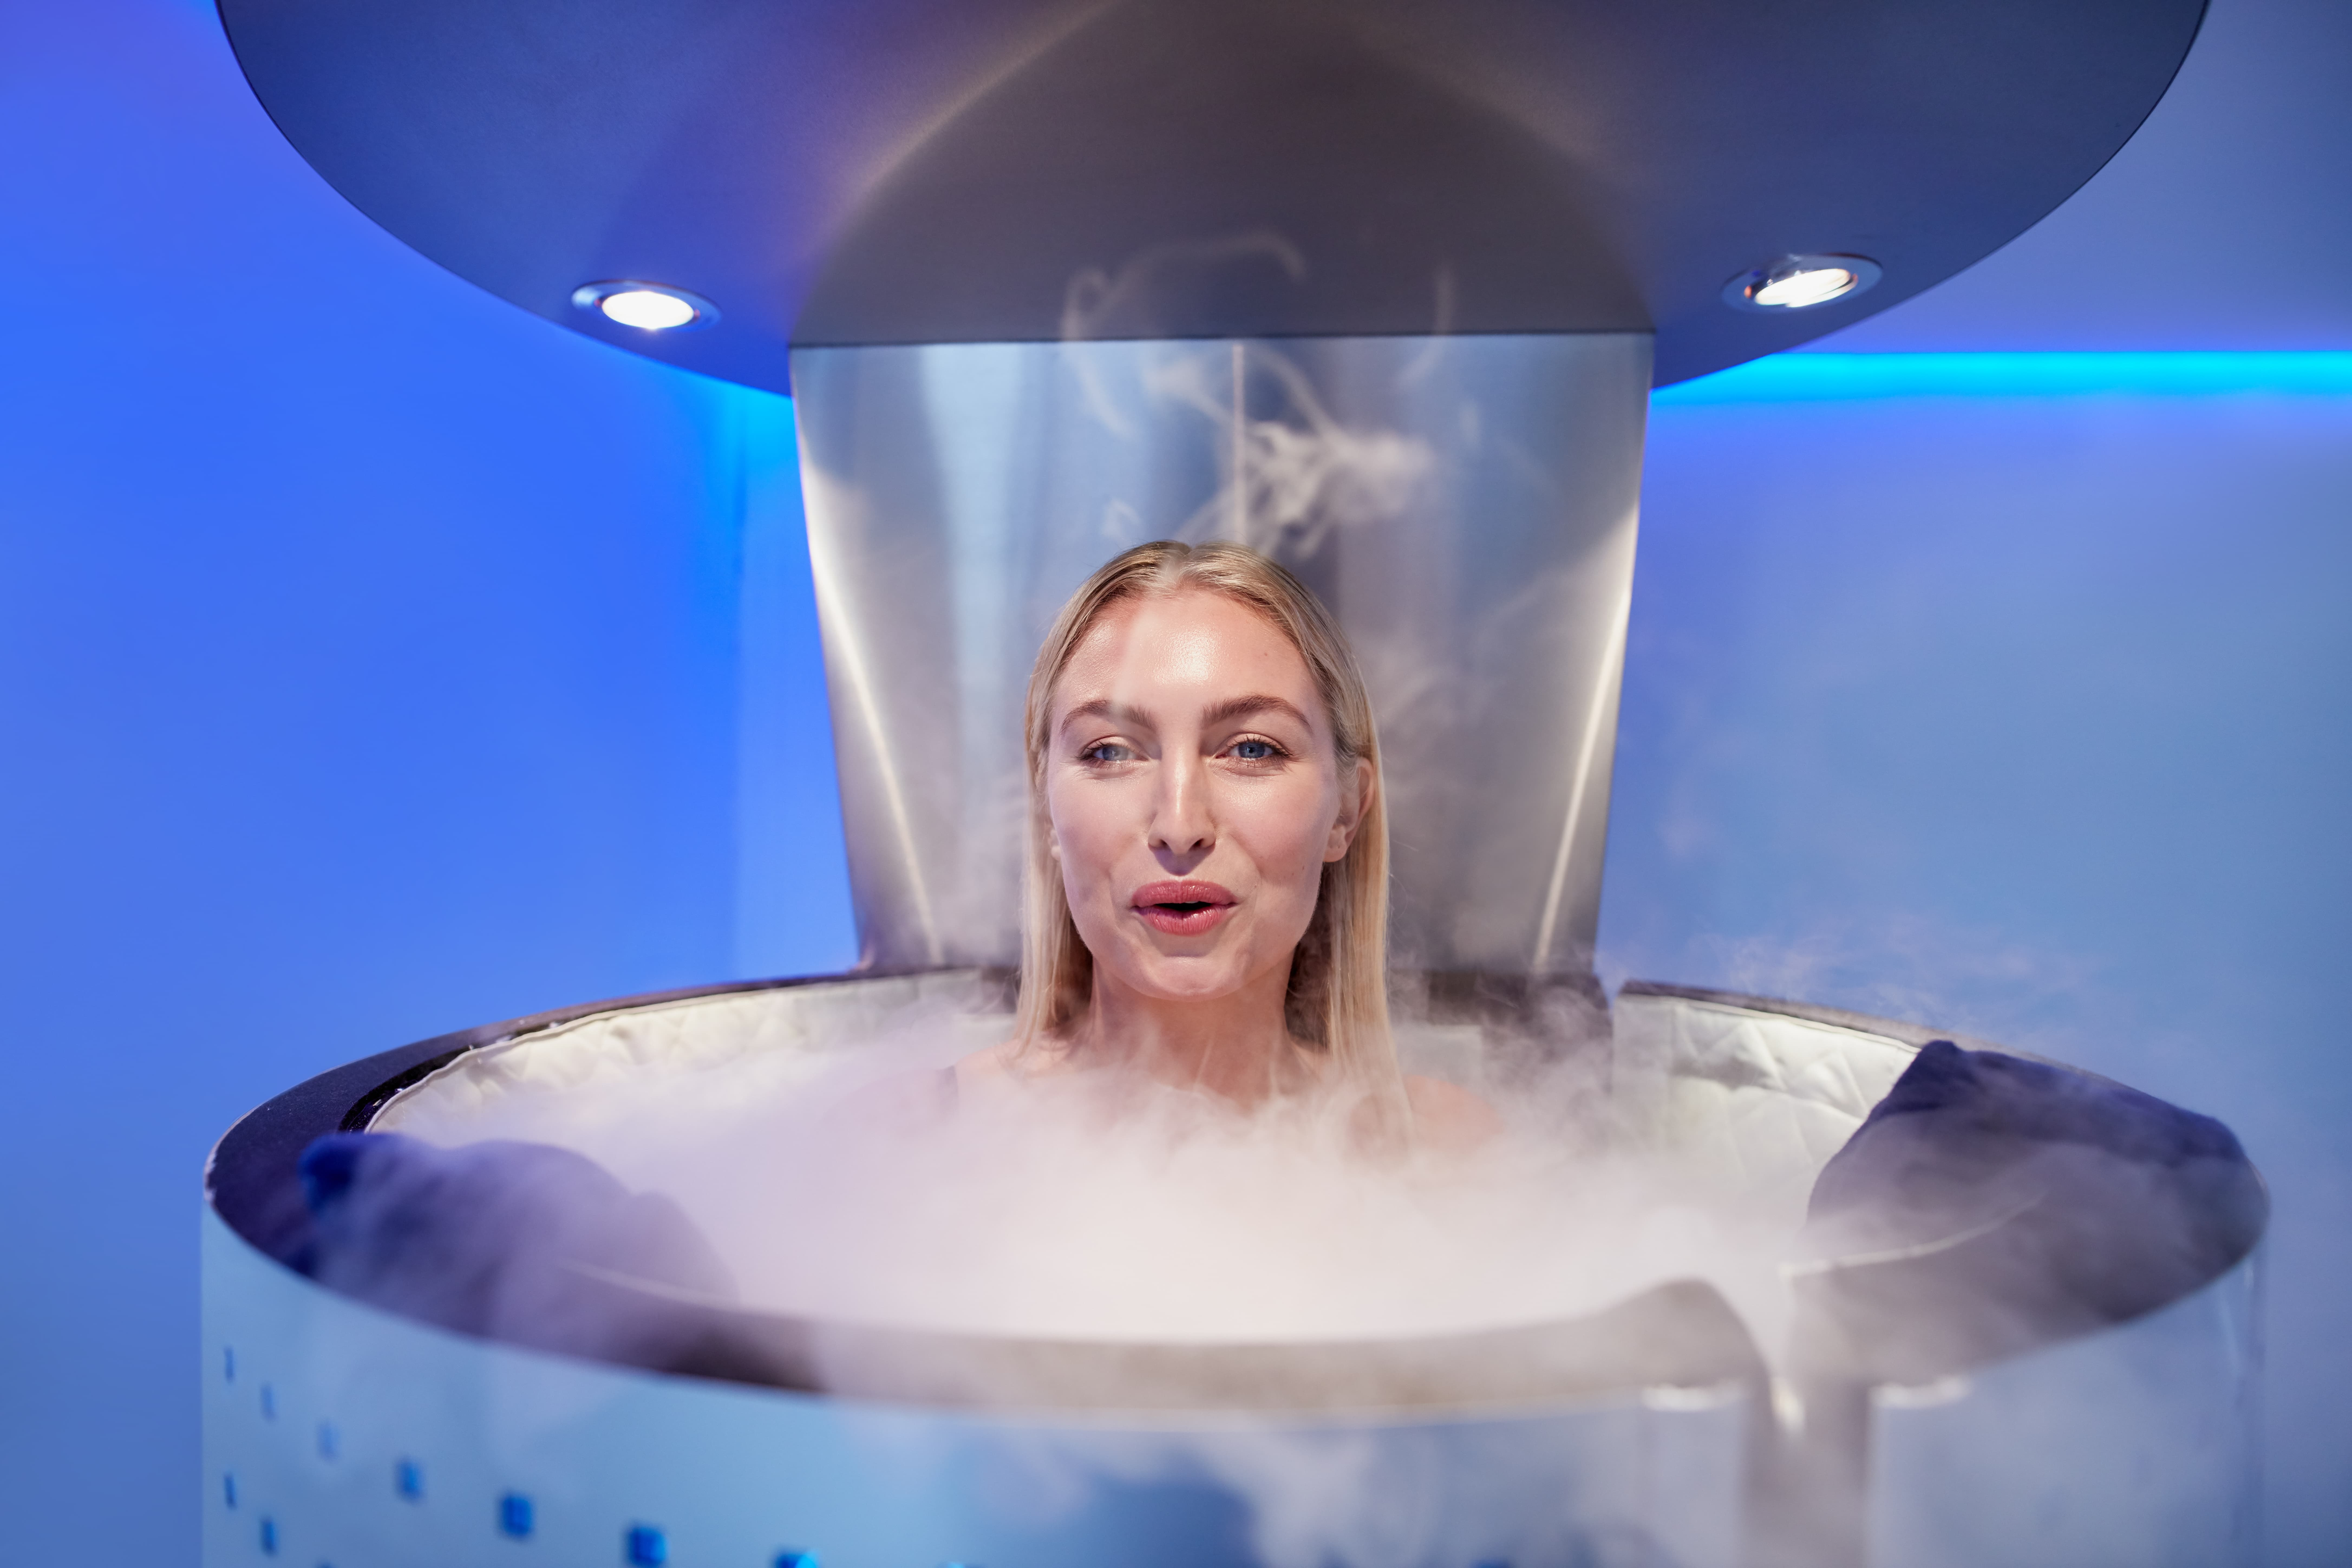 Hydrotherapy, Cold Therapy And The Top 5 Fitness Recovery Methods Explained